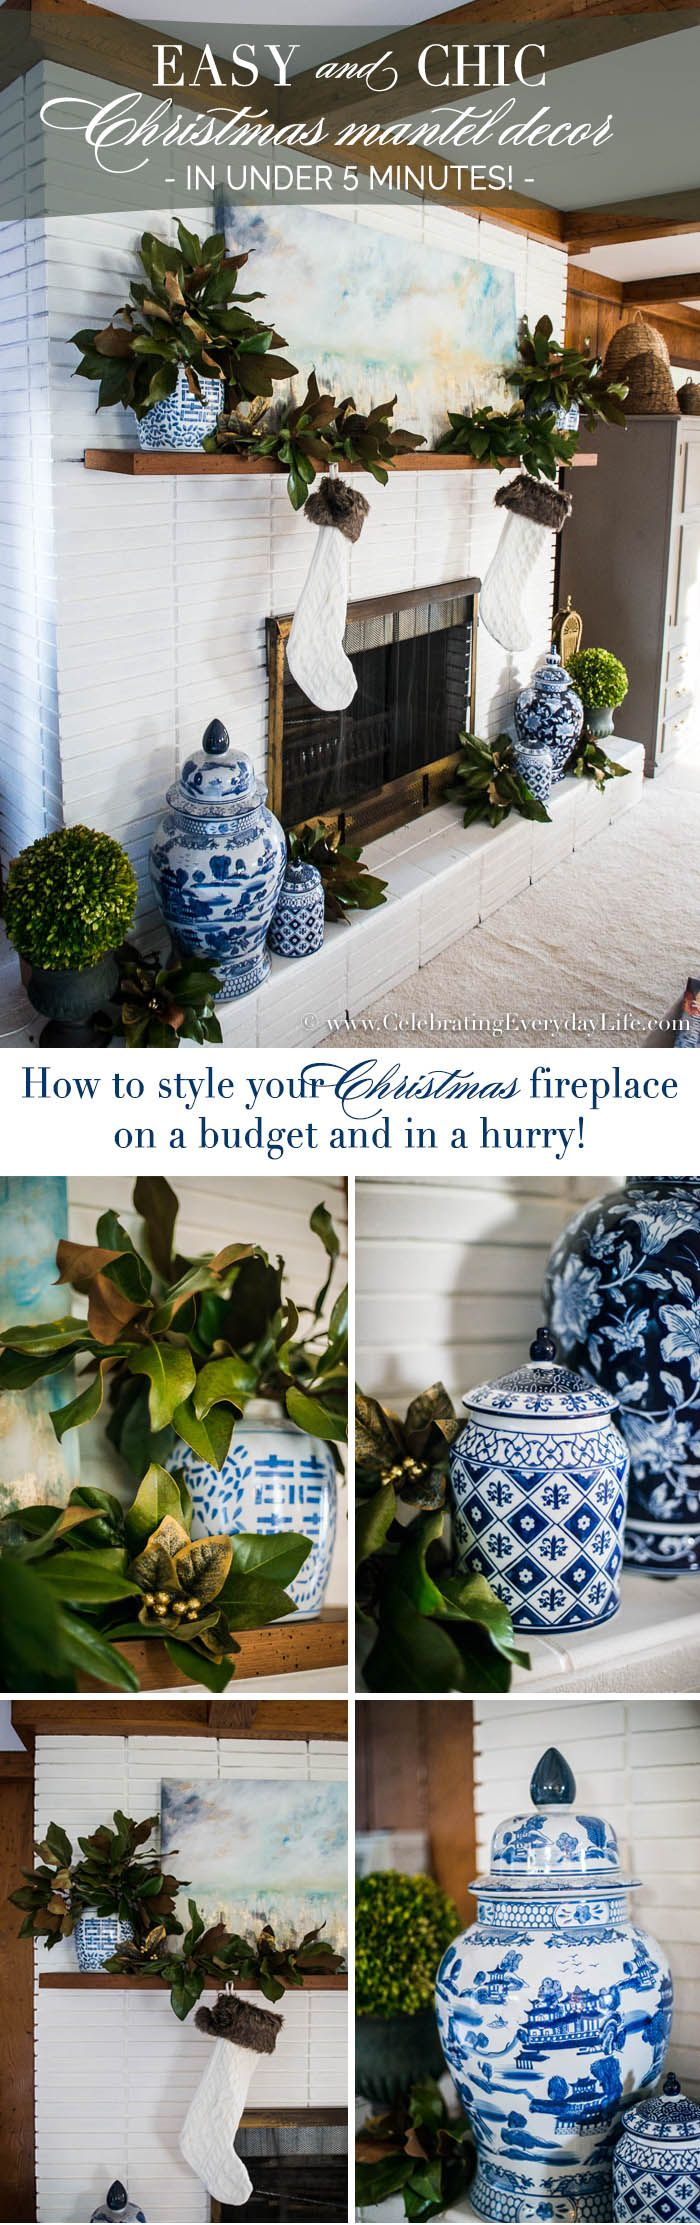 Extravagant fireplace steals the show stone fireplace for the spacious - Want To Keep Your Christmas Mantel Simple But Beautiful Try My 5 Minute Easy